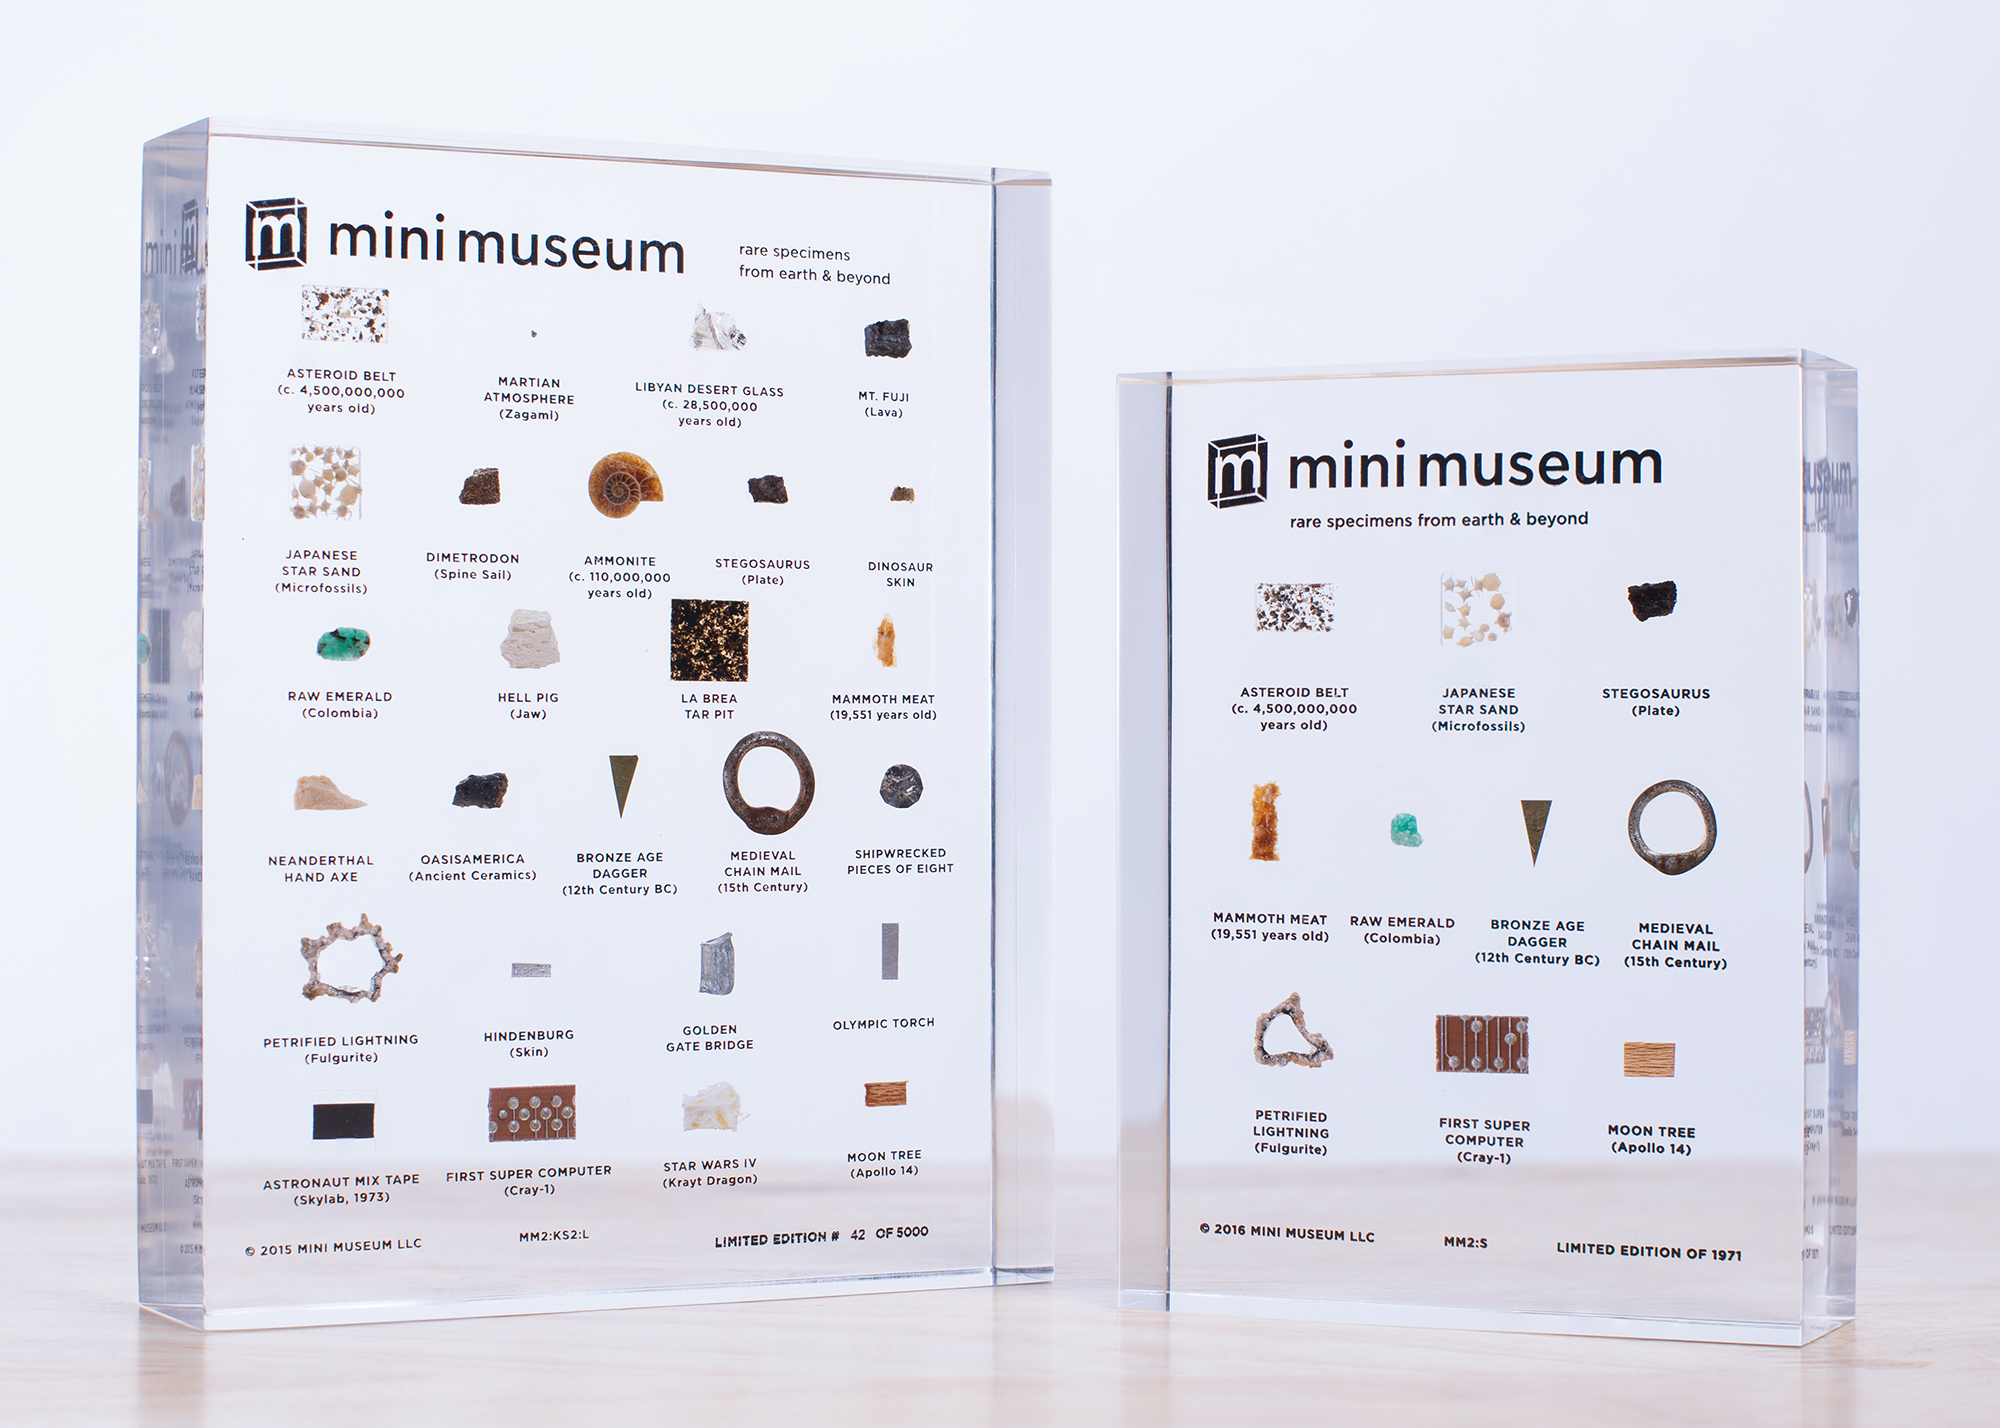 Mini Museum   The Mini Museum is a personal collection of rare and authentic specimens from across time and space. Since their first Kickstarter project in 2014, they have shared this journey with thousands of people all over the world. Items are sourced directly from the world's top auction houses and estates, notable scientists and personal expeditions. Mini Museums have items you will never find anywhere else such as crystallized fragments of the Martian Atmosphere (Studied by NASA scientists on Earth and validated directly by the Martian Rover Curiosity) and notable names like Buzz Aldrin, Steve Jobs, HRH Prince Charles and Princess Diana, Muhammad Ali, Winston Churchill.